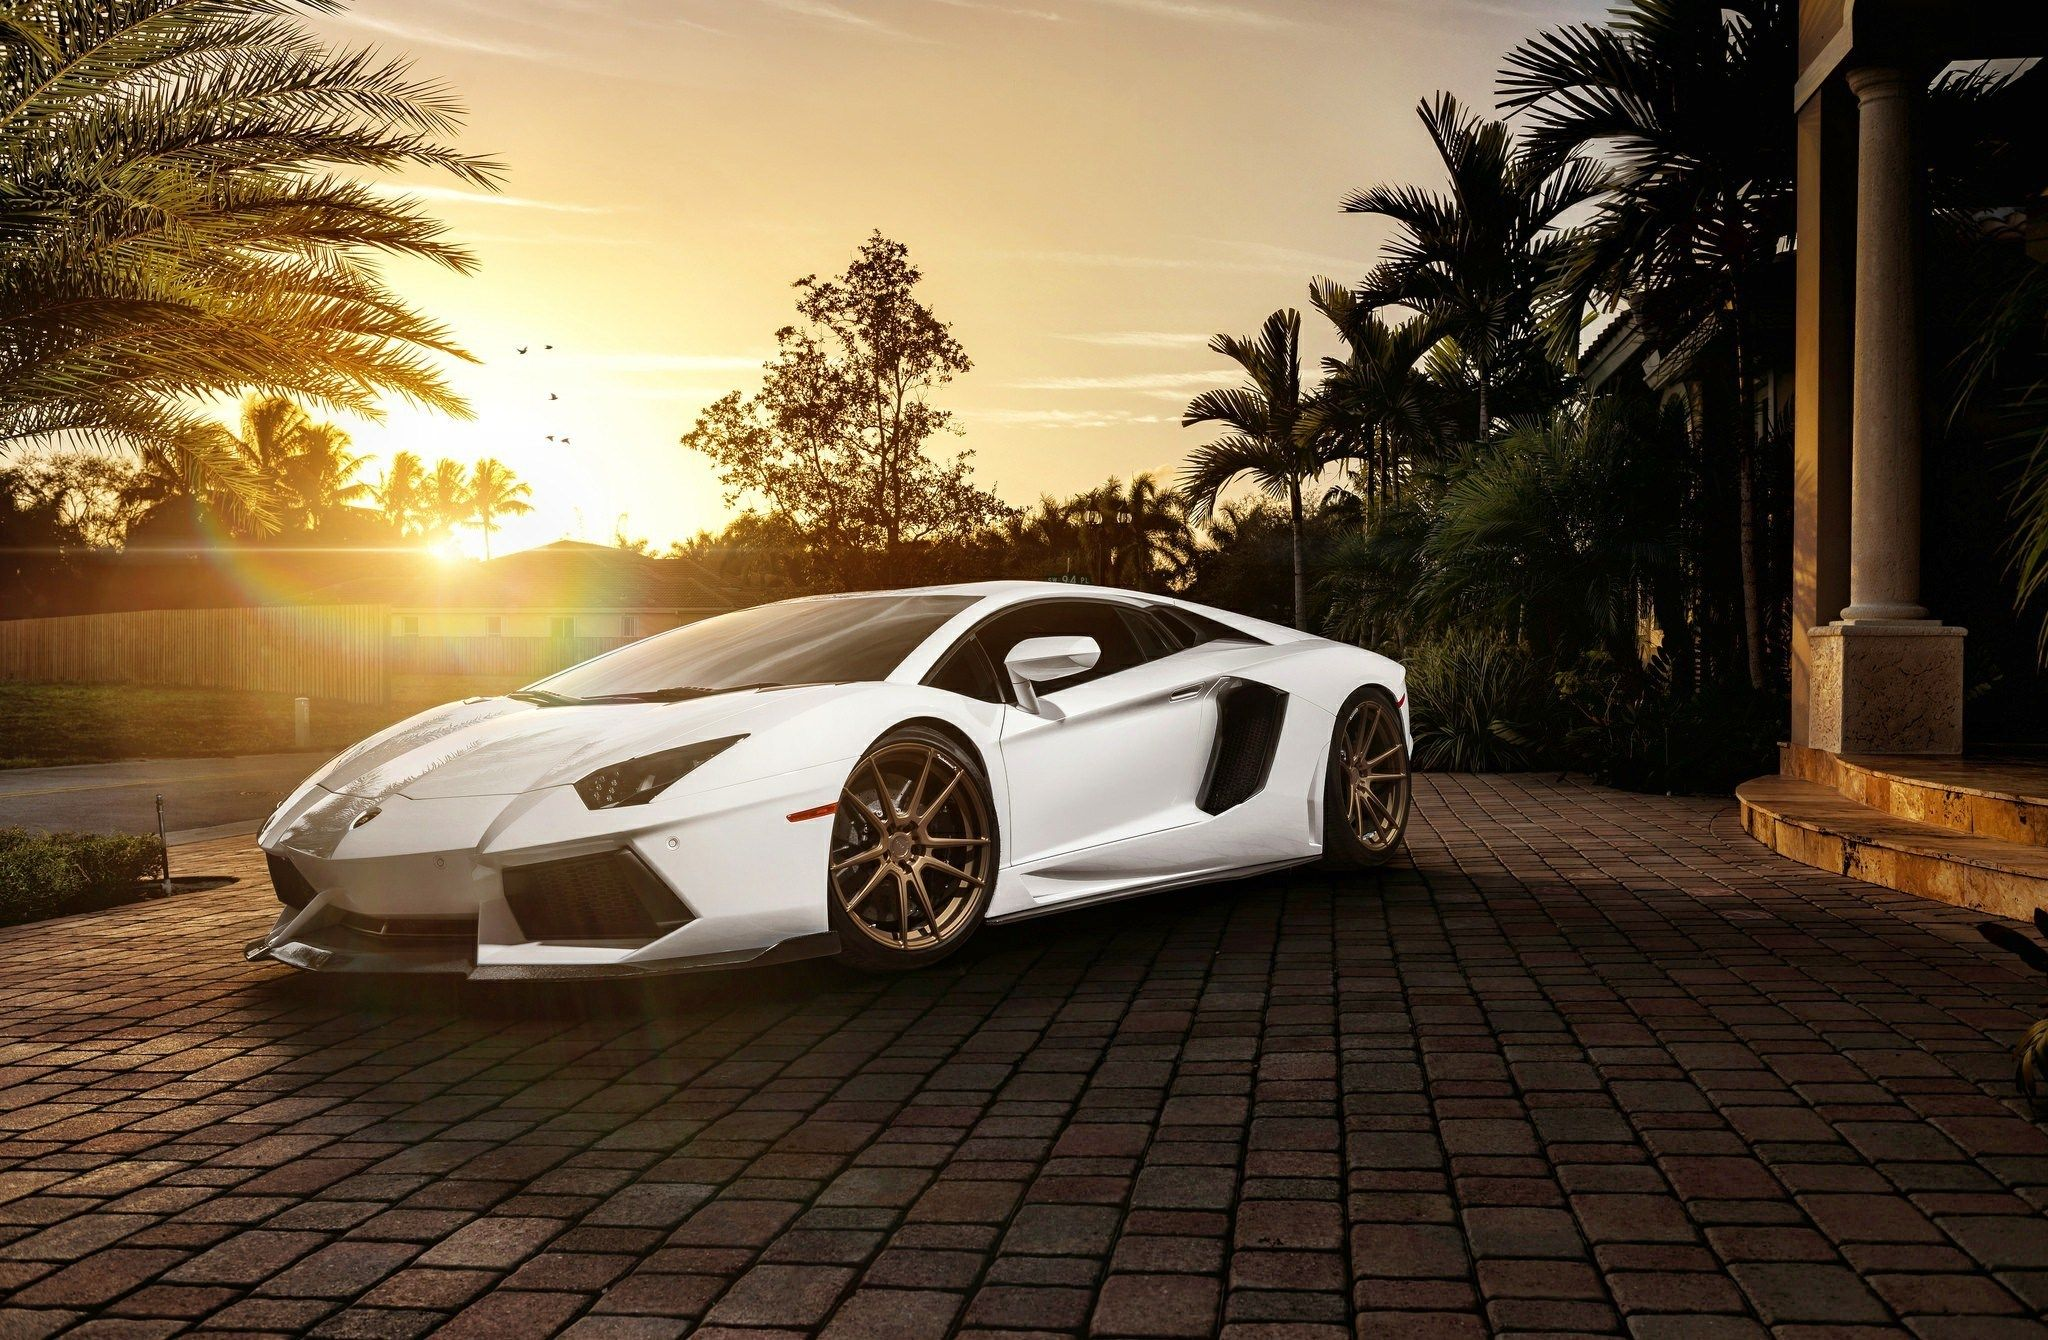 lamborghini aventador macbook wallpapers hd by Dabria